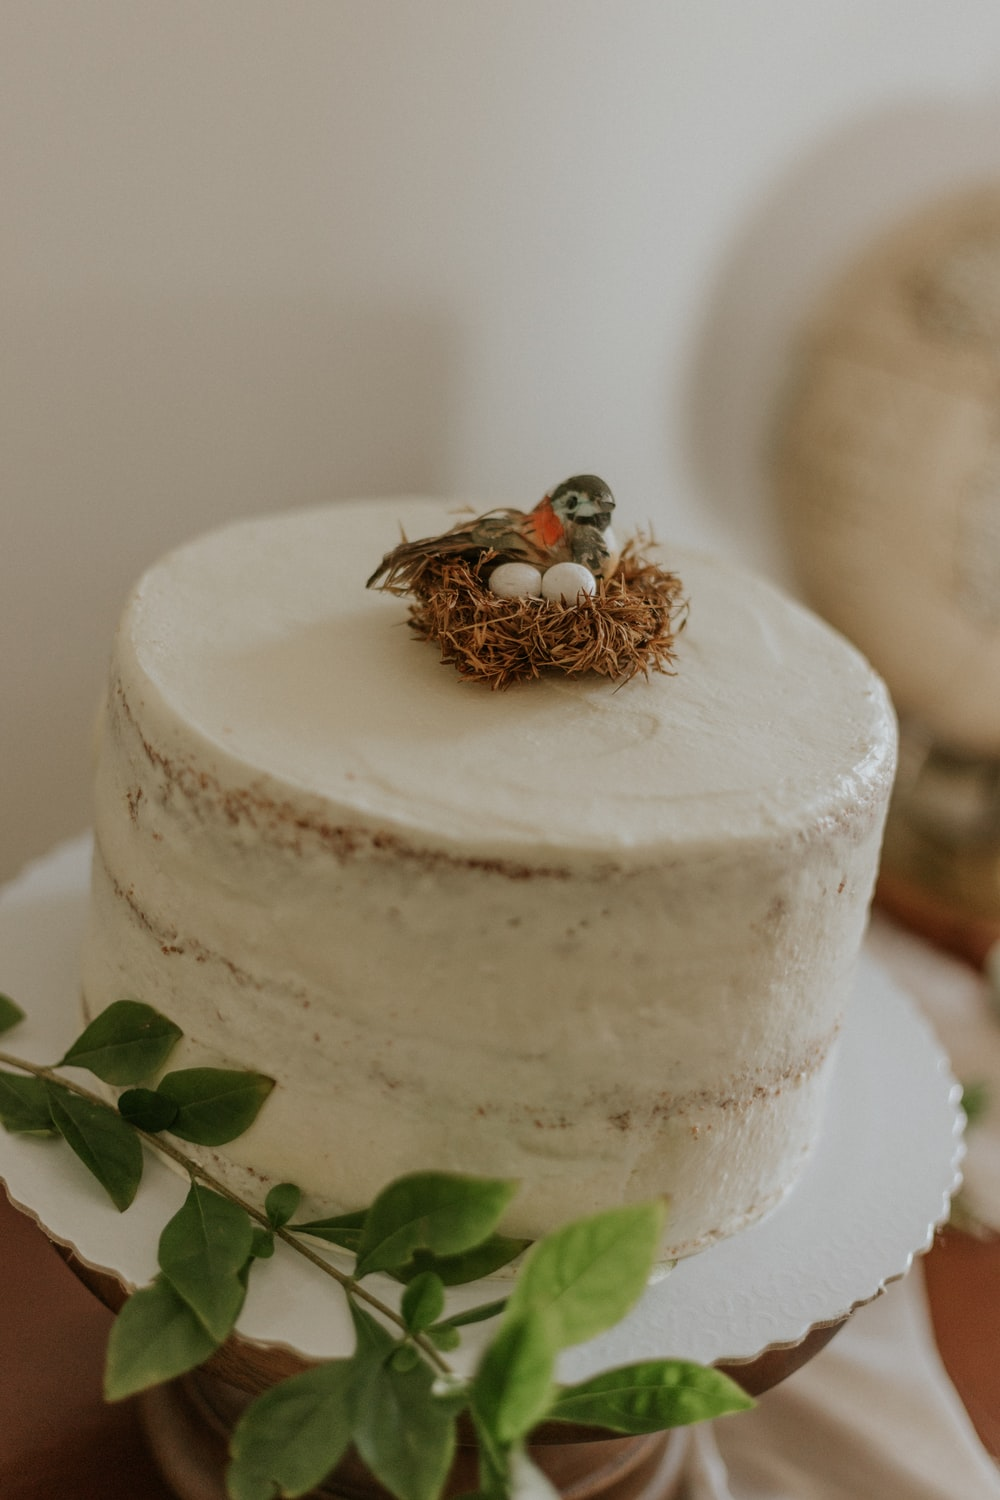 white round cake with green leaves on top